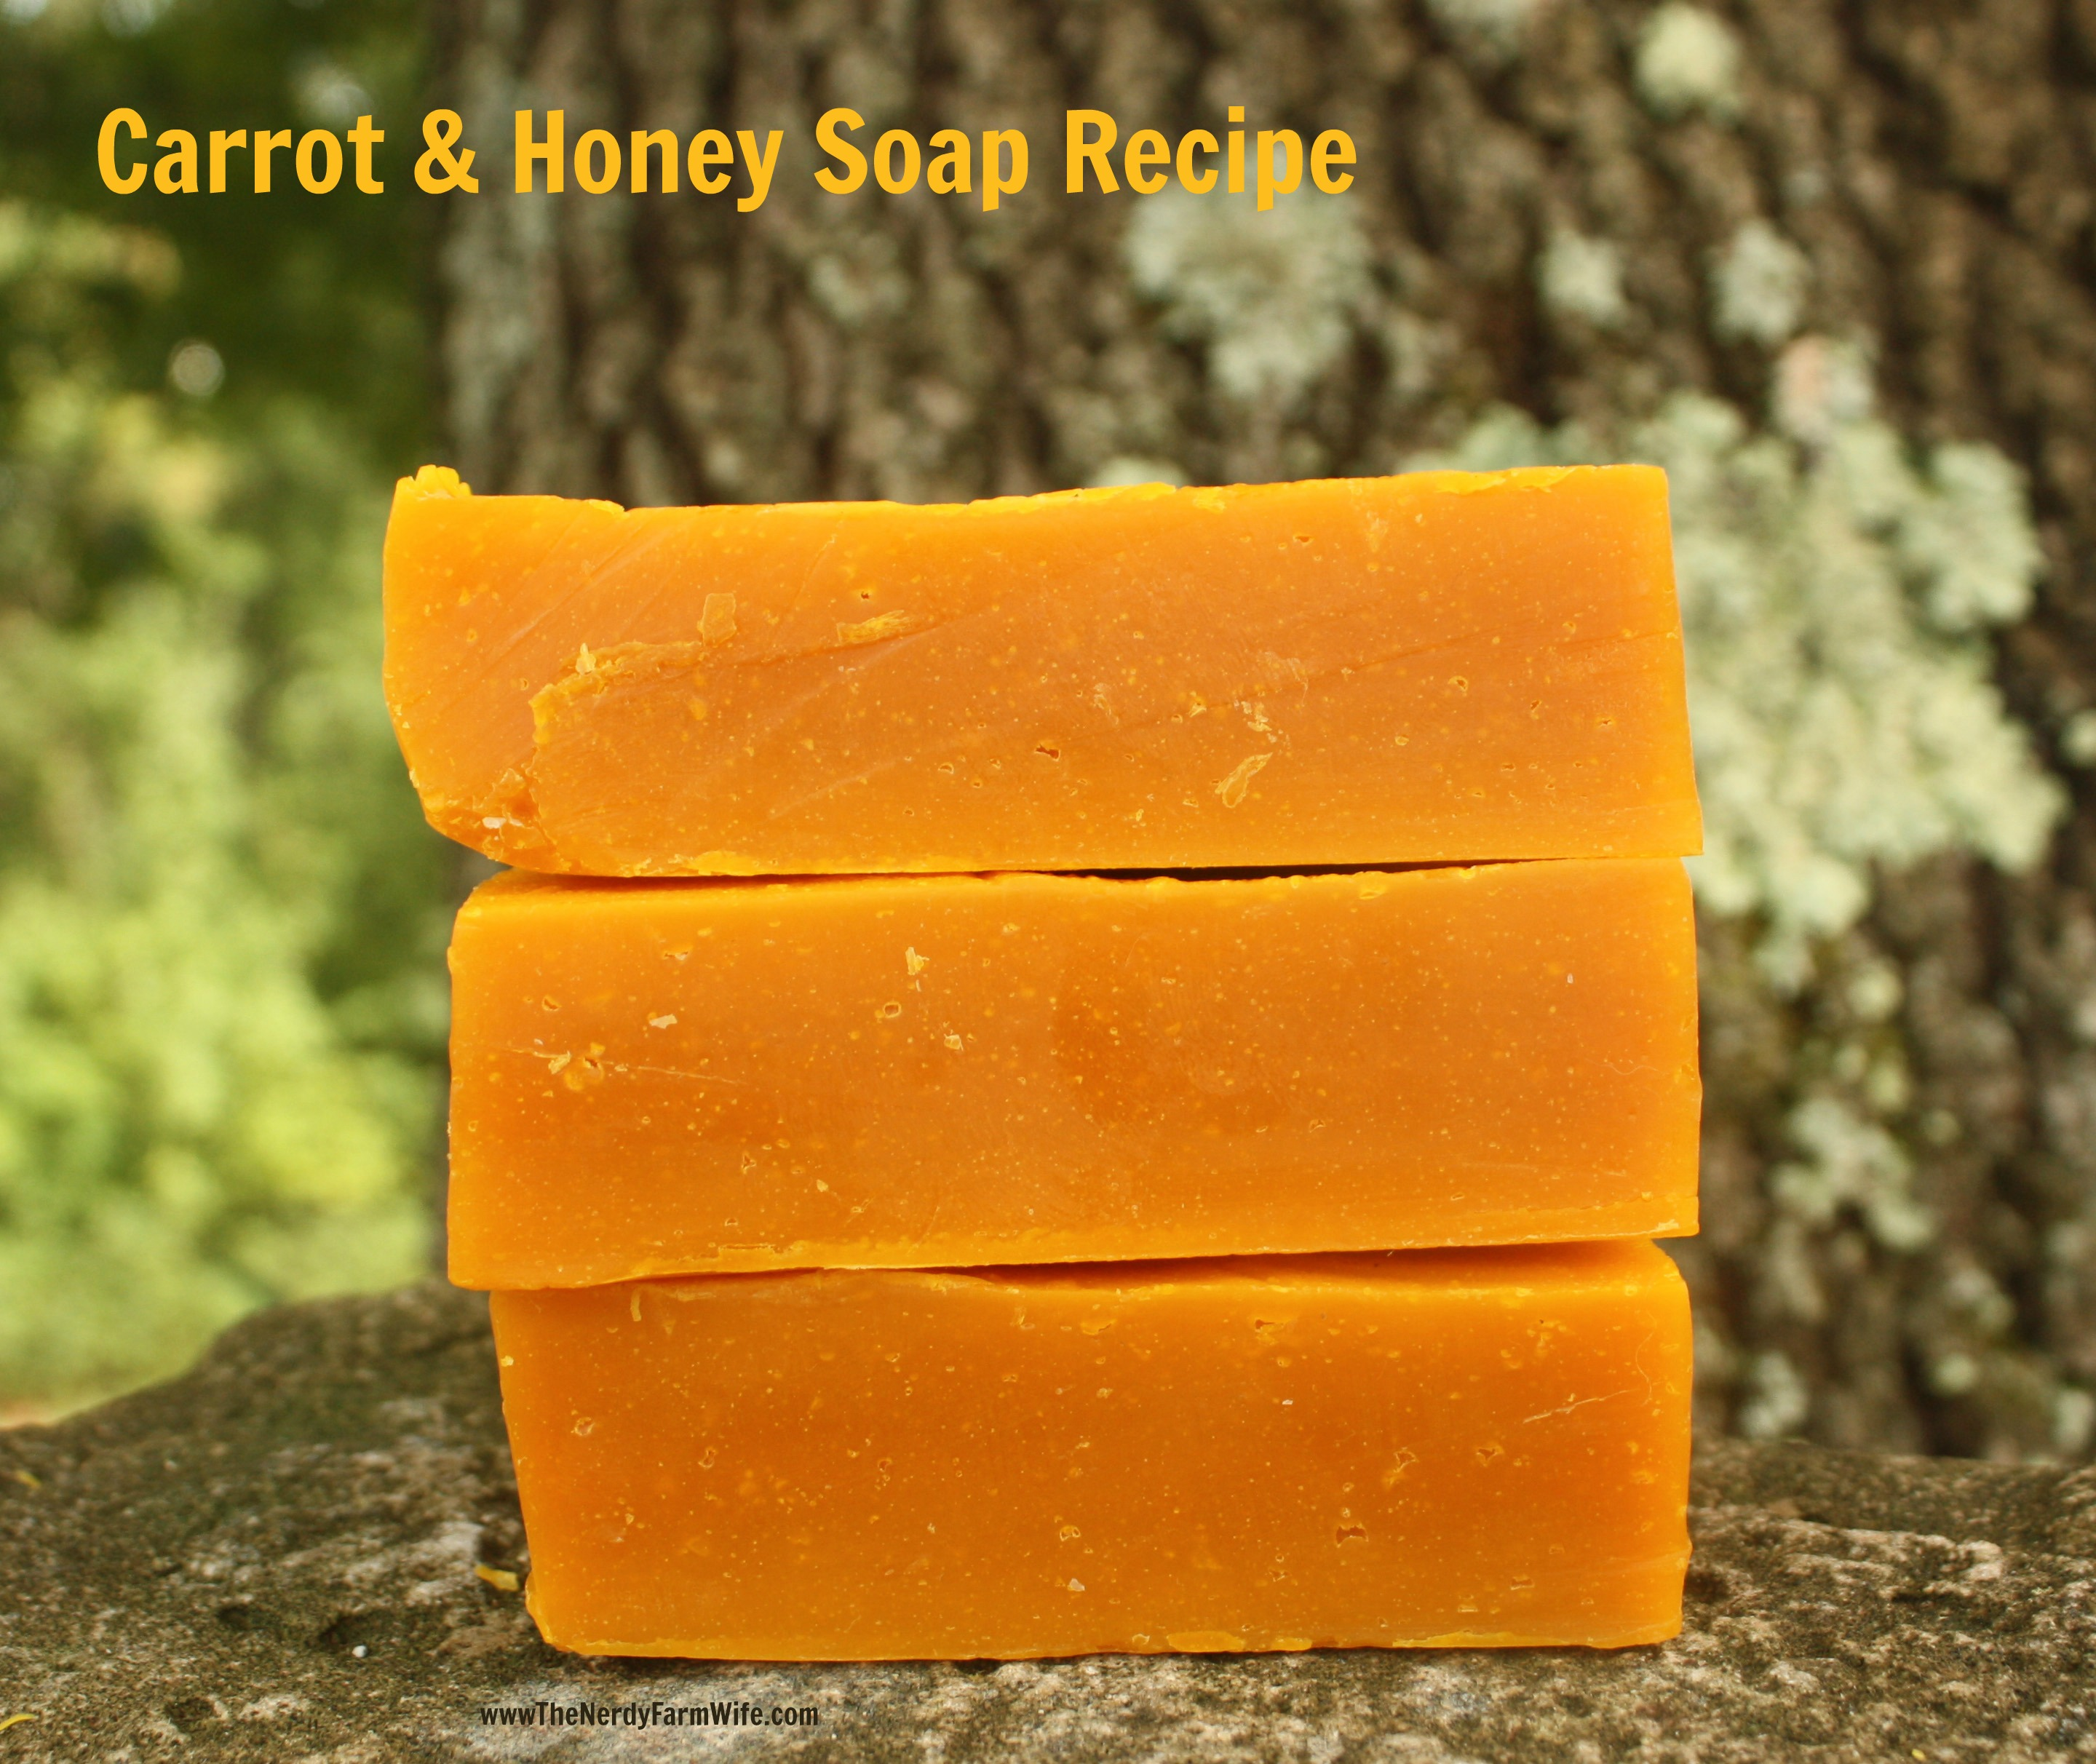 Carrot & Honey Soap Recipe – The Nerdy Farm Wife